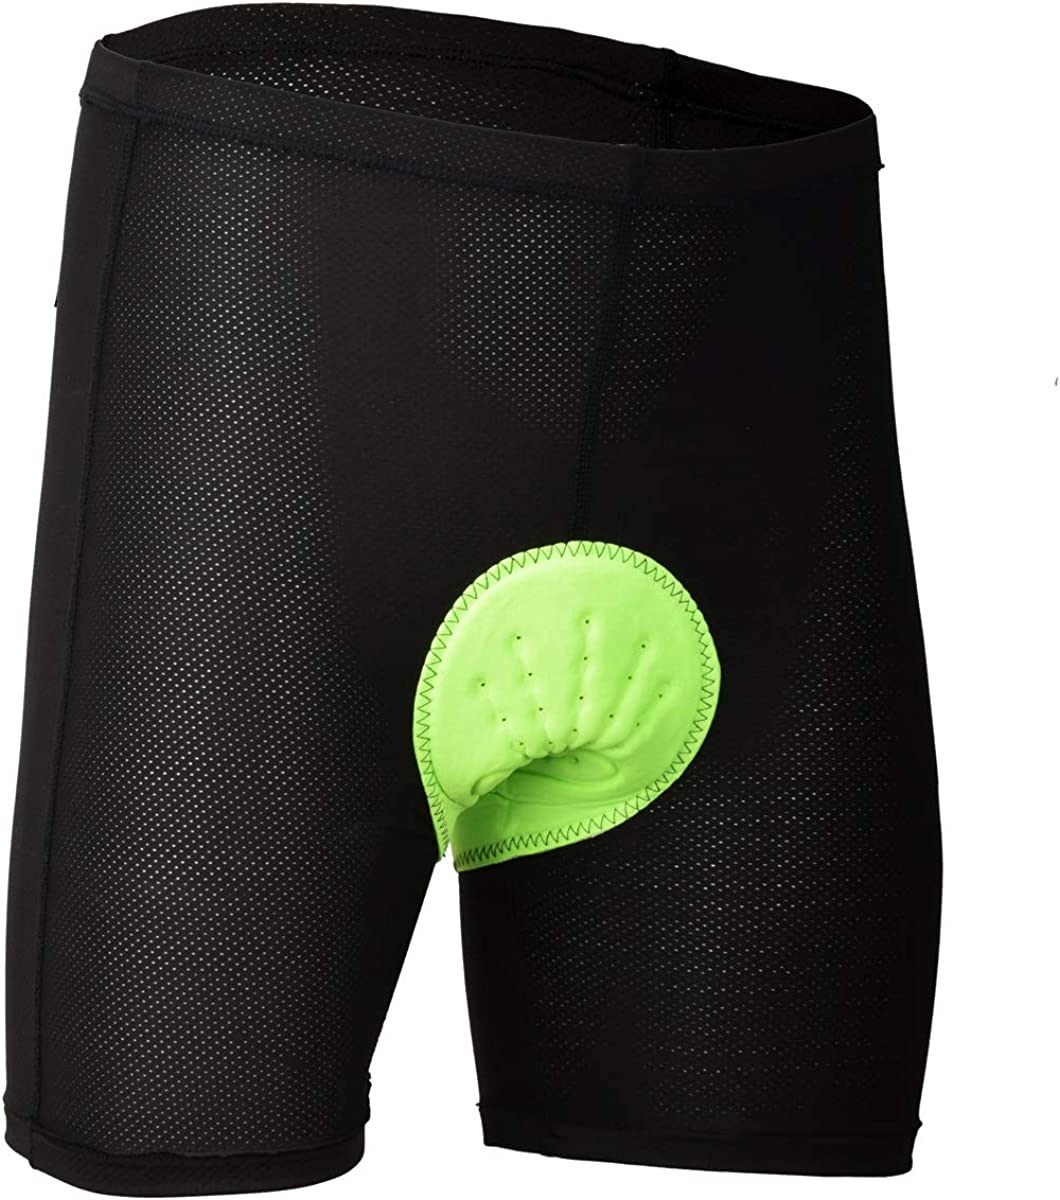 LONG AO 3D Gel Pad Cyling Shorts Breathable Quick Dry for Mens